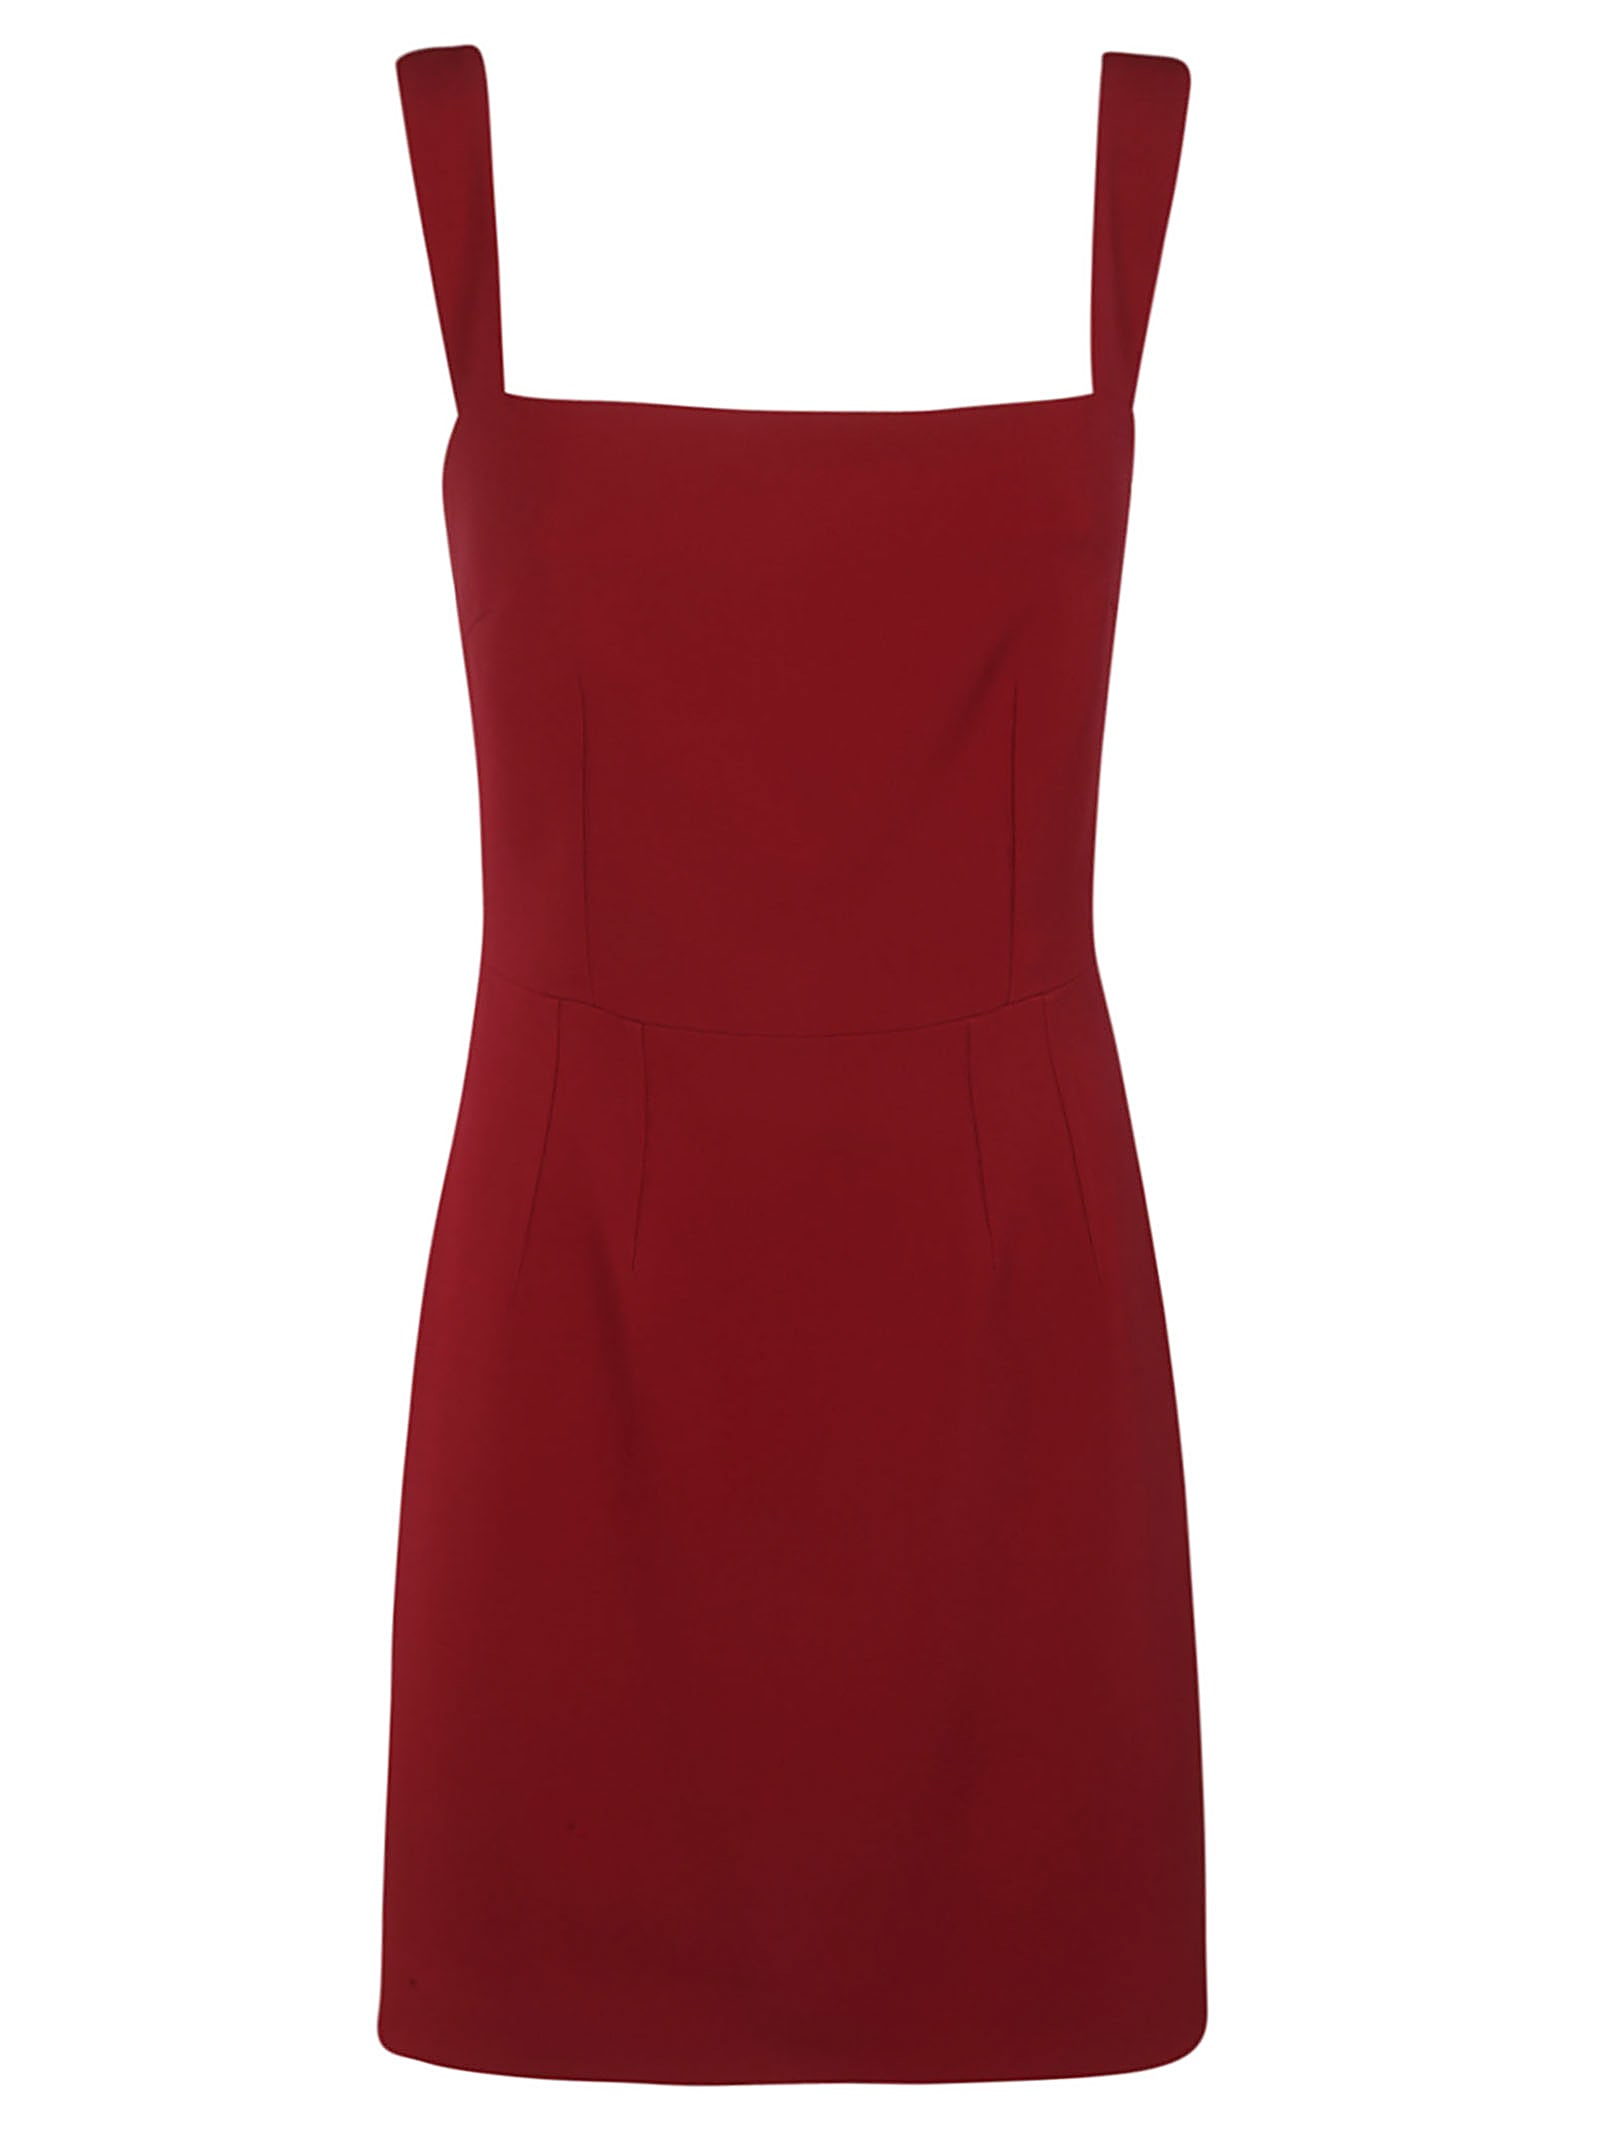 Dolce & Gabbana Square Neck Dress